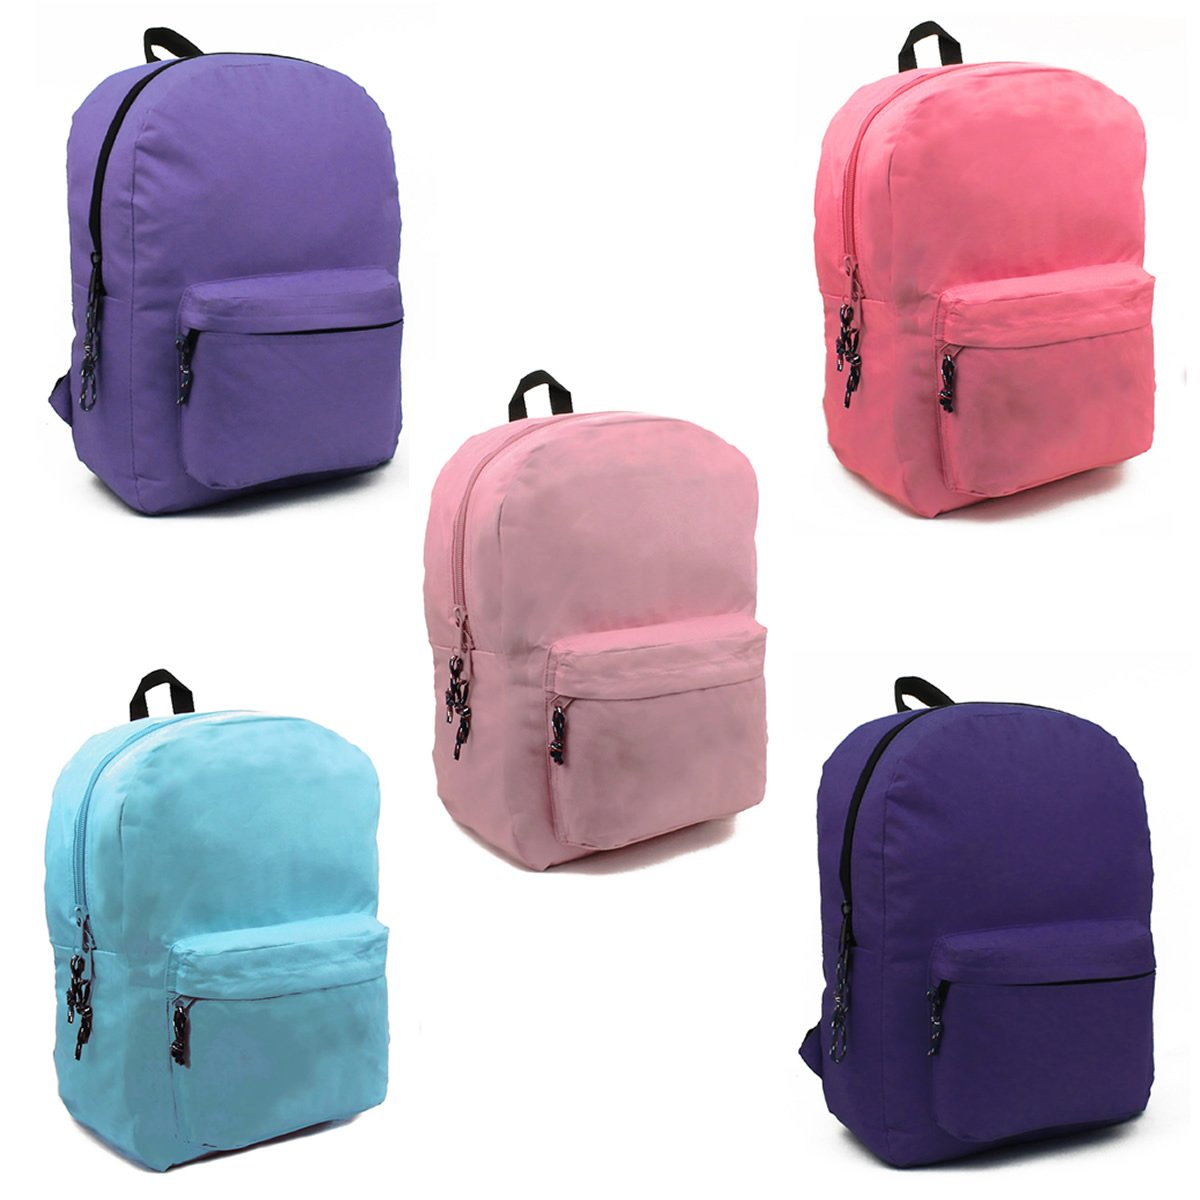 Wholesale 17'' Backpacks In 6 Assorted Colors - Case of 24 by AIR EXPRESS